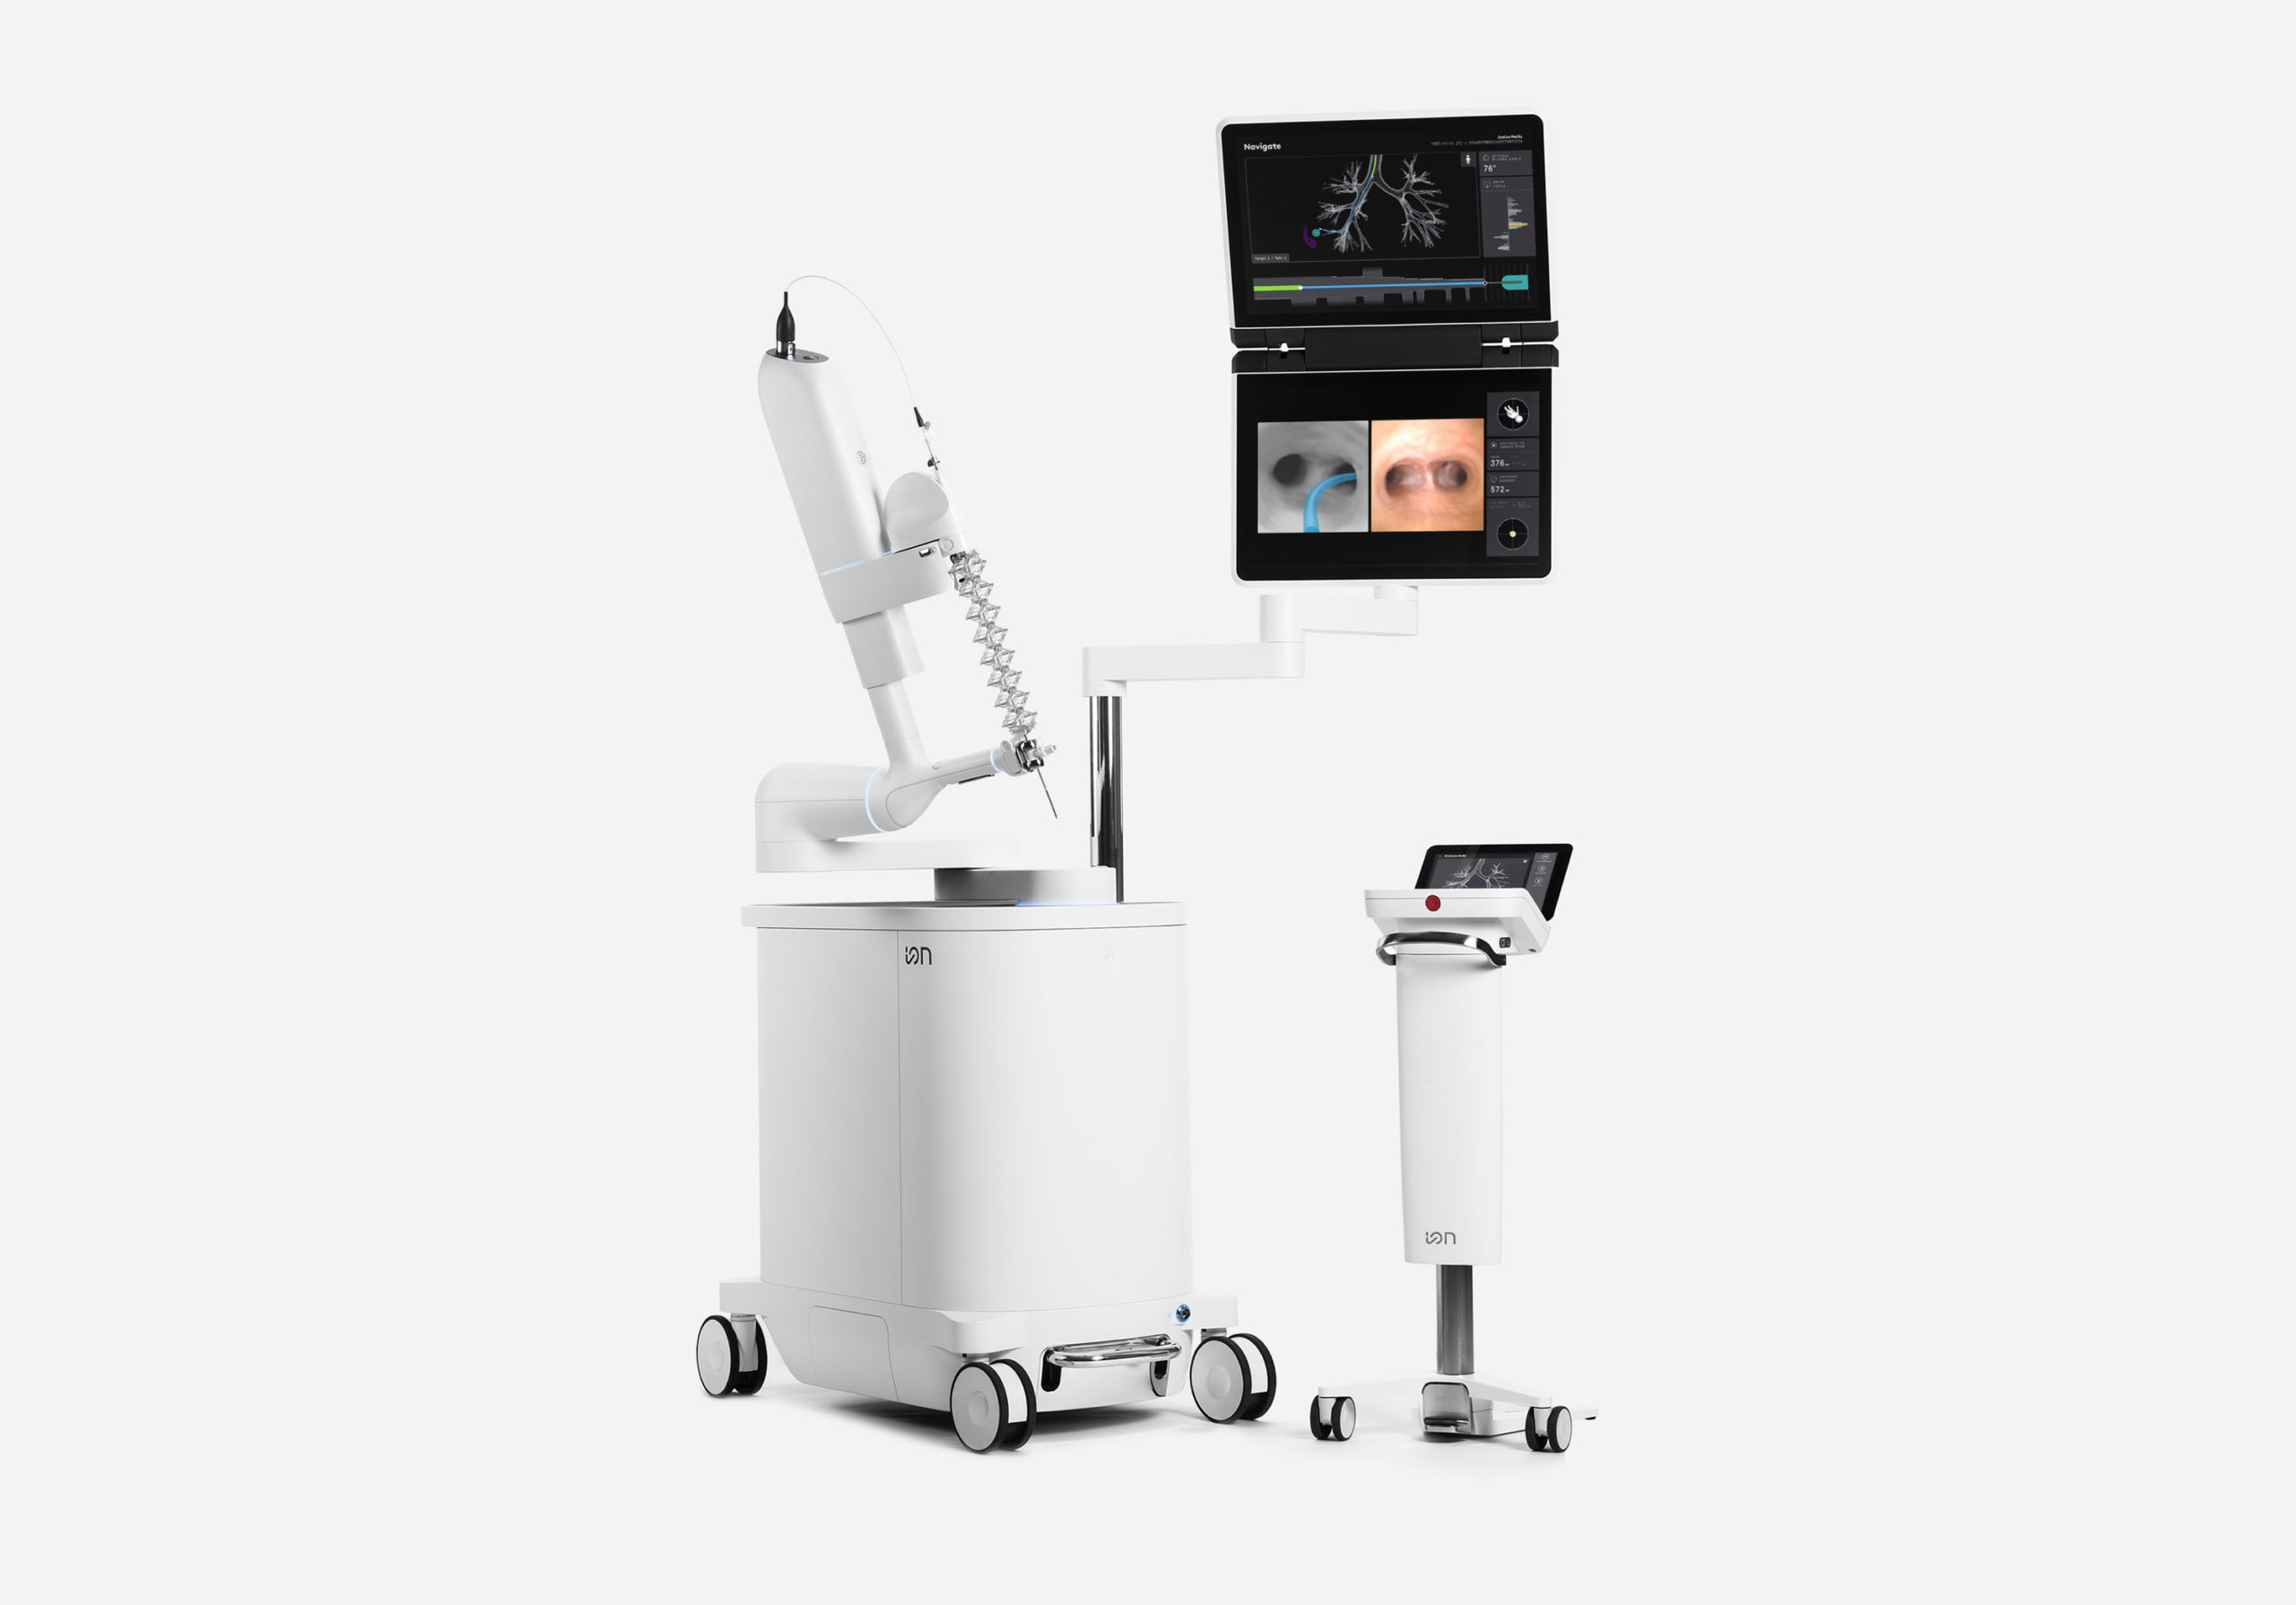 photo of the robot